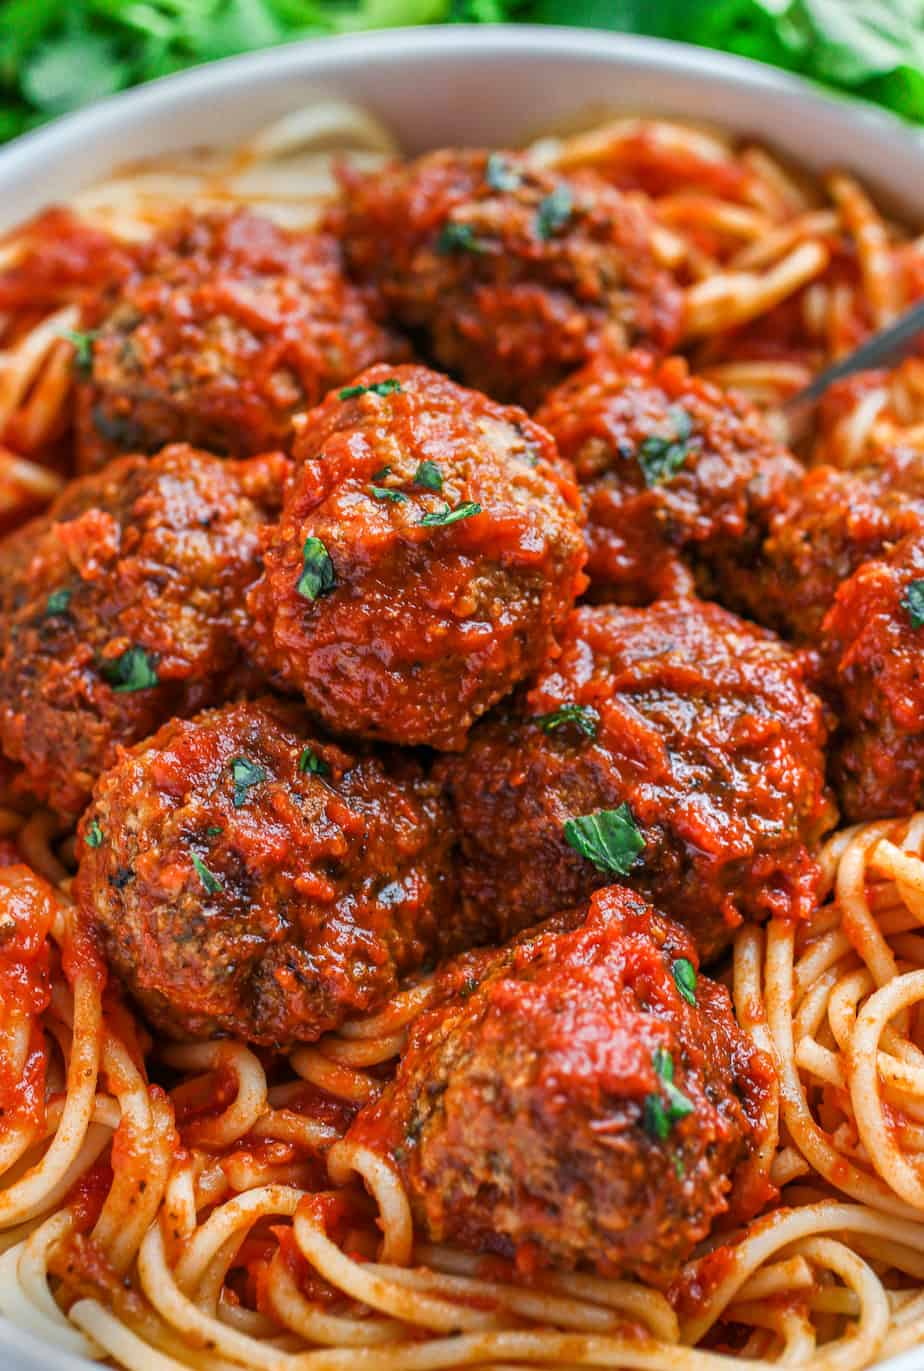 Meatballs in sauce on a bed of spaghetti.